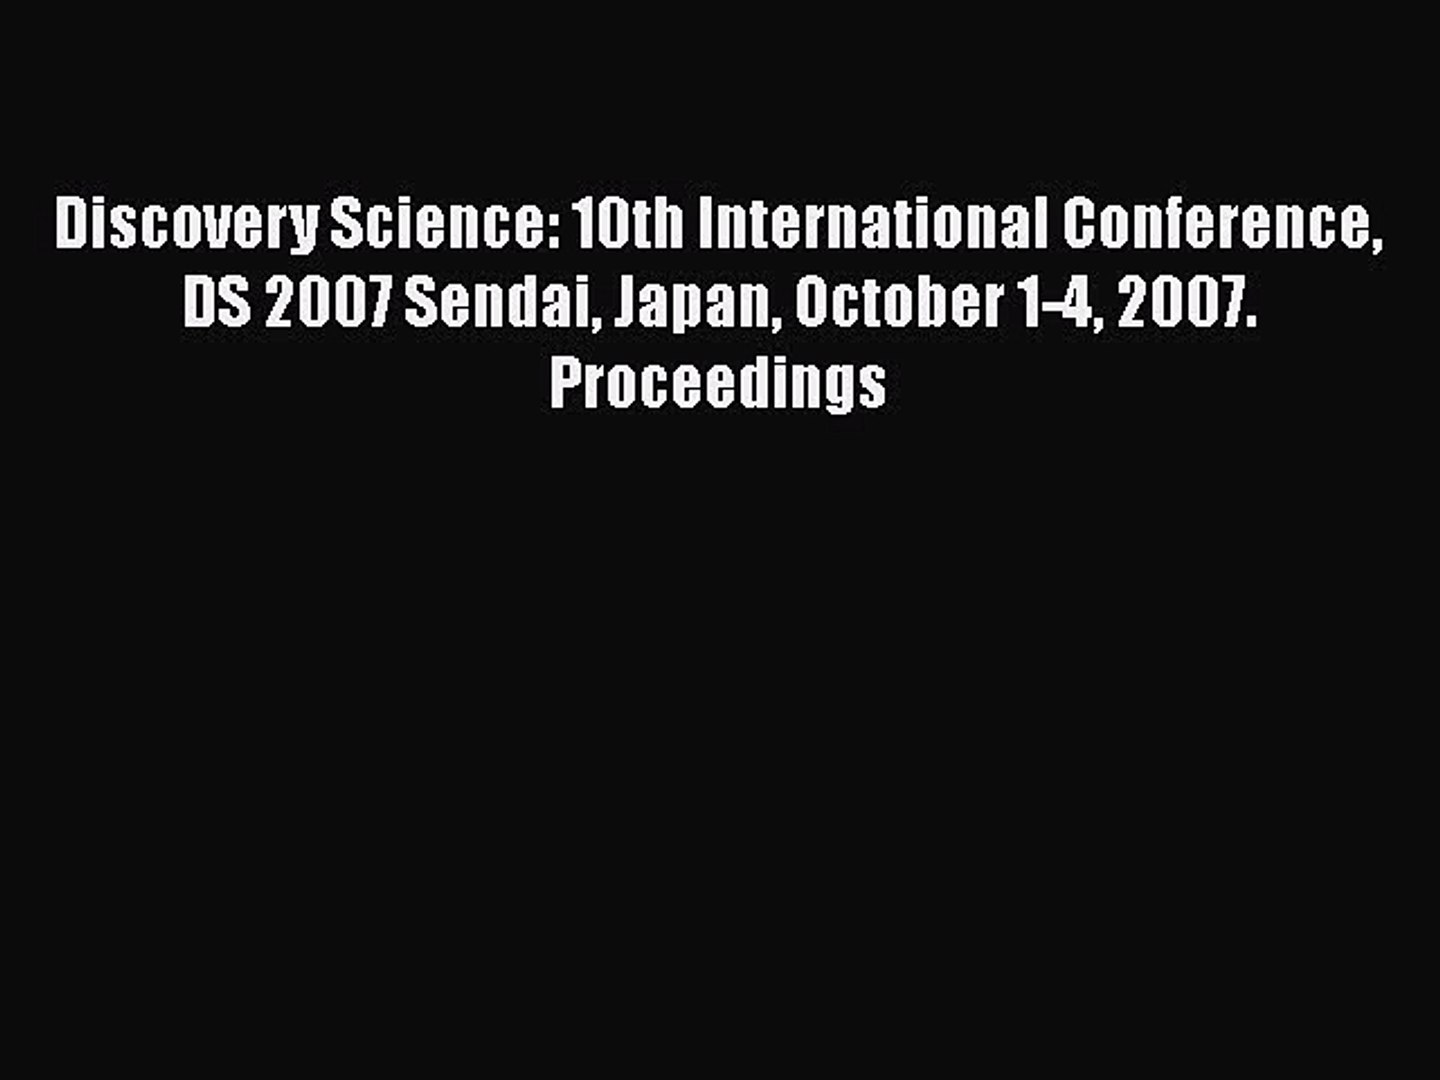 Read Discovery Science: 10th International Conference DS 2007 Sendai Japan October 1-4 2007.